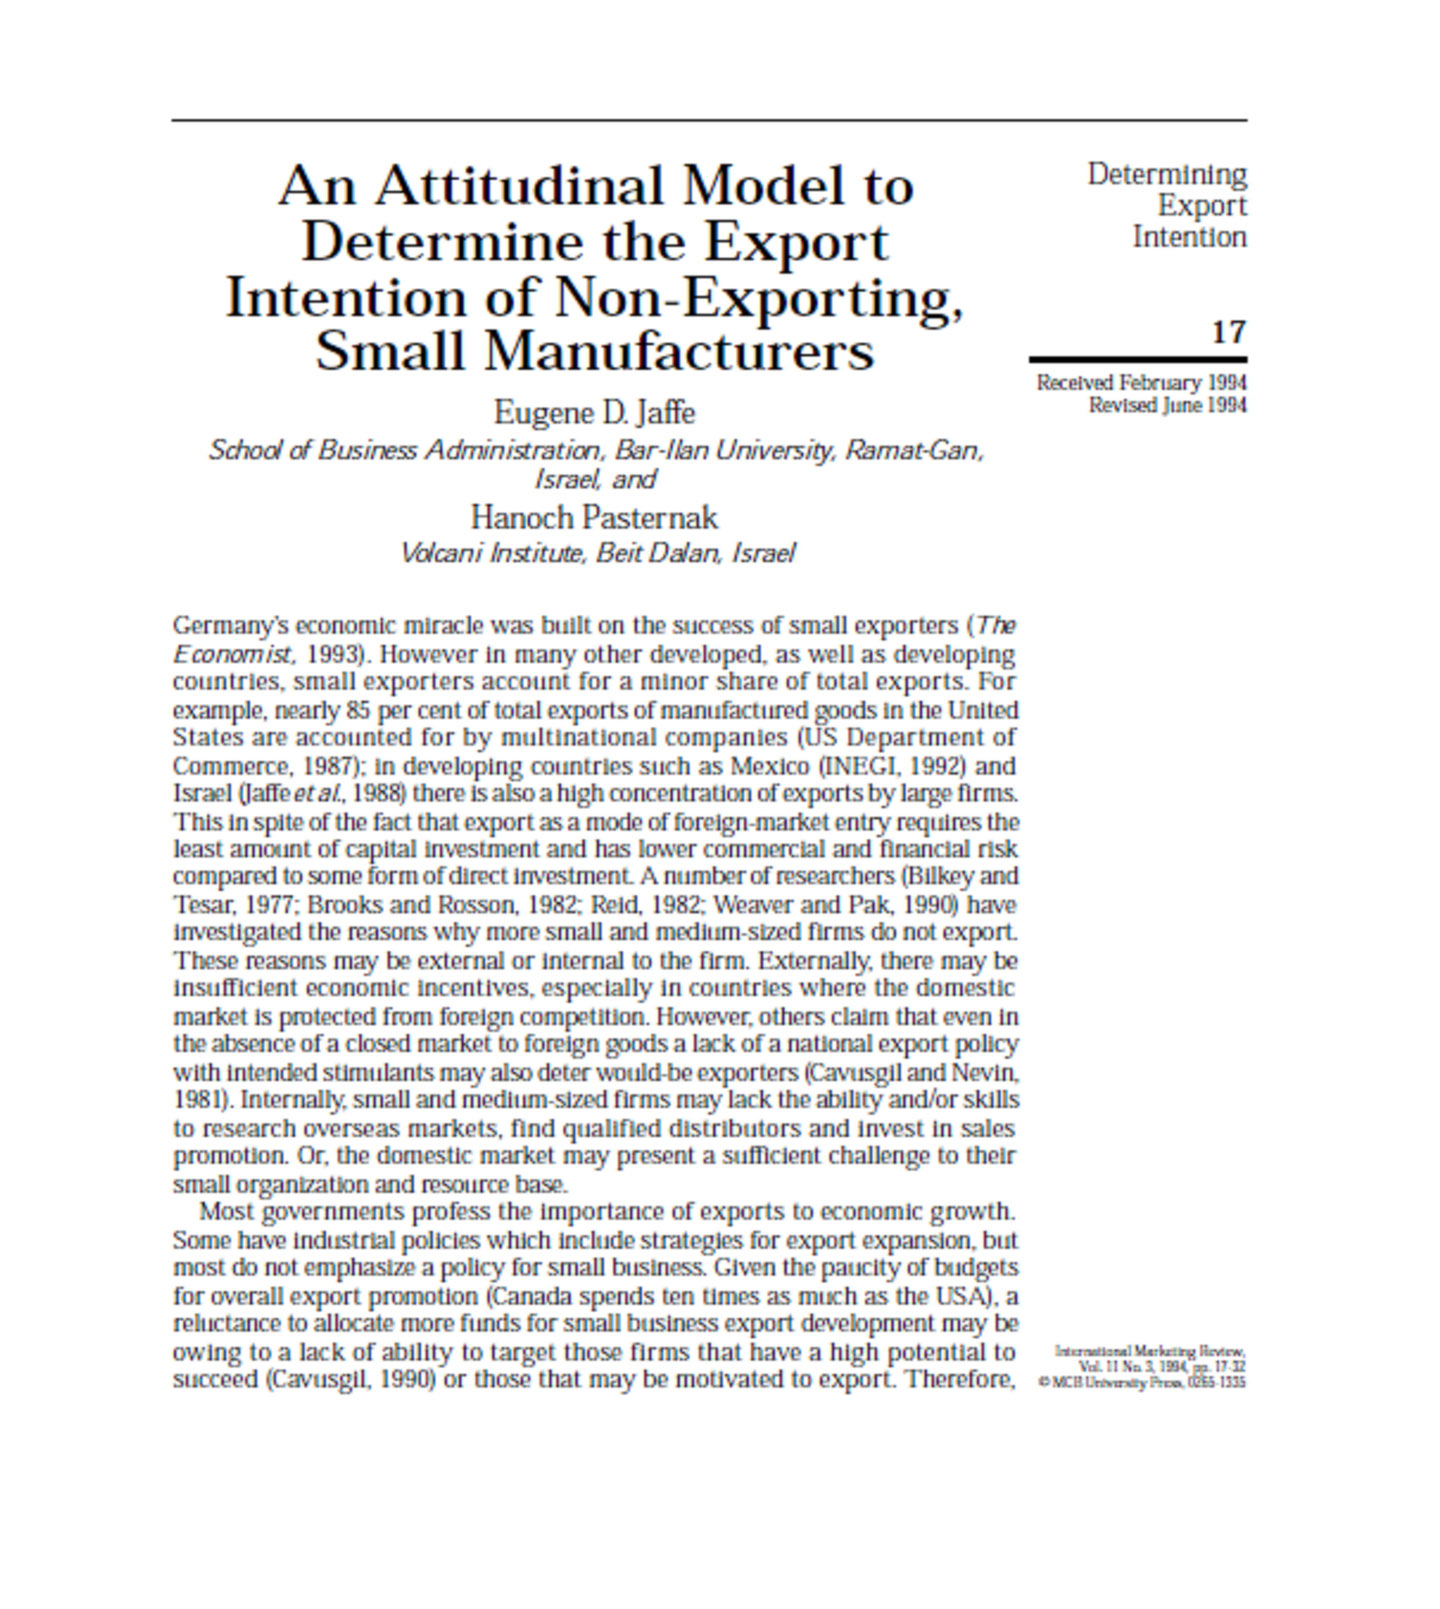 An Attitudinal Model toDetermine the ExportIntention of Non-Exporting,Small Manufacturers 16